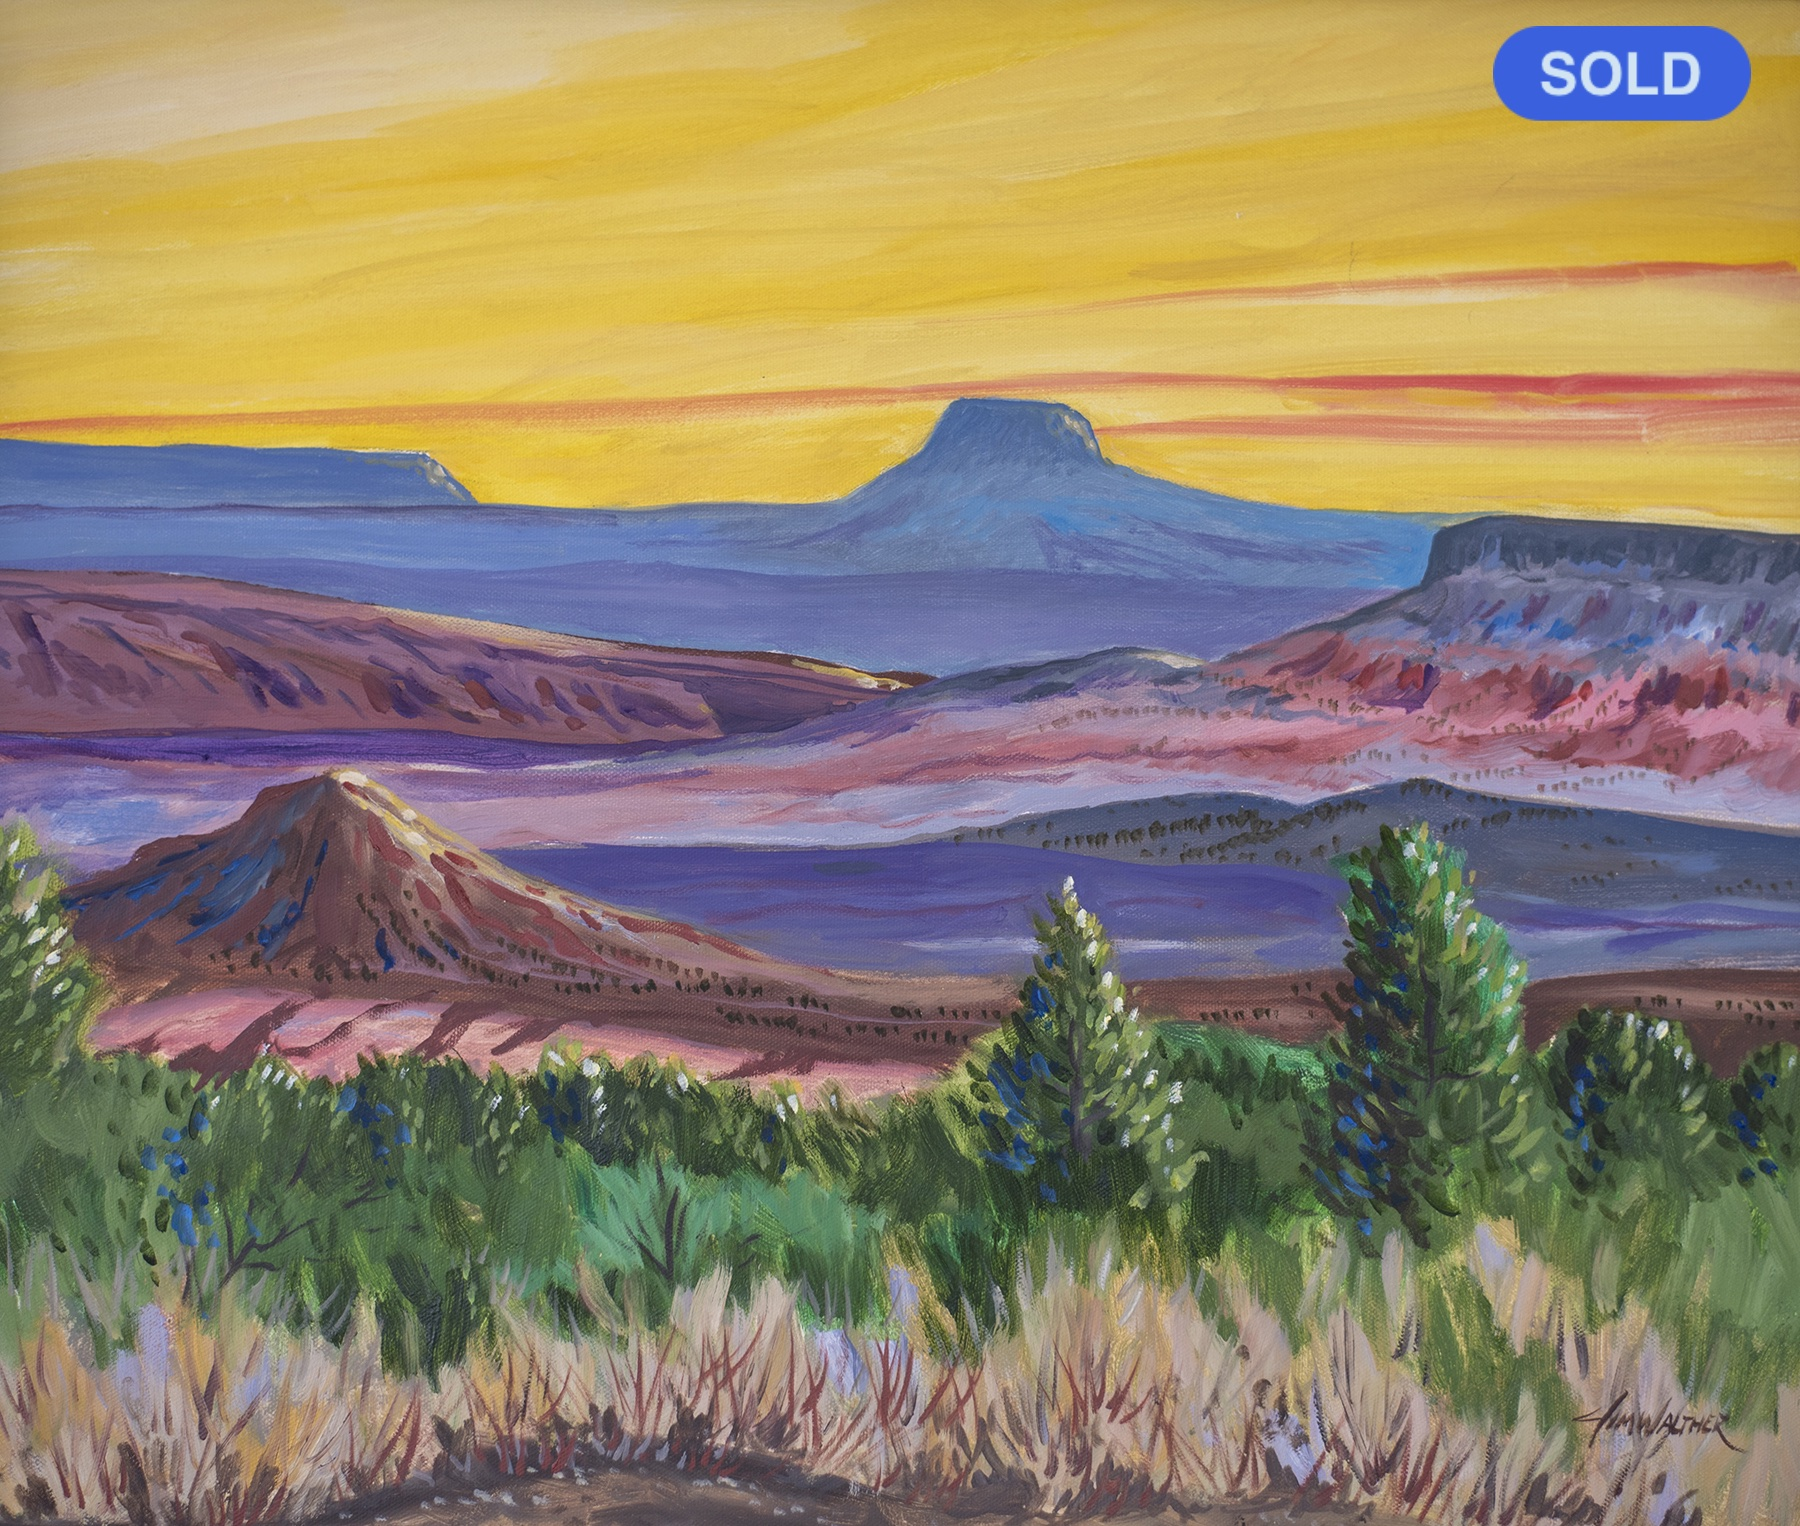 SOLD - Jim Walther: The Pedernal